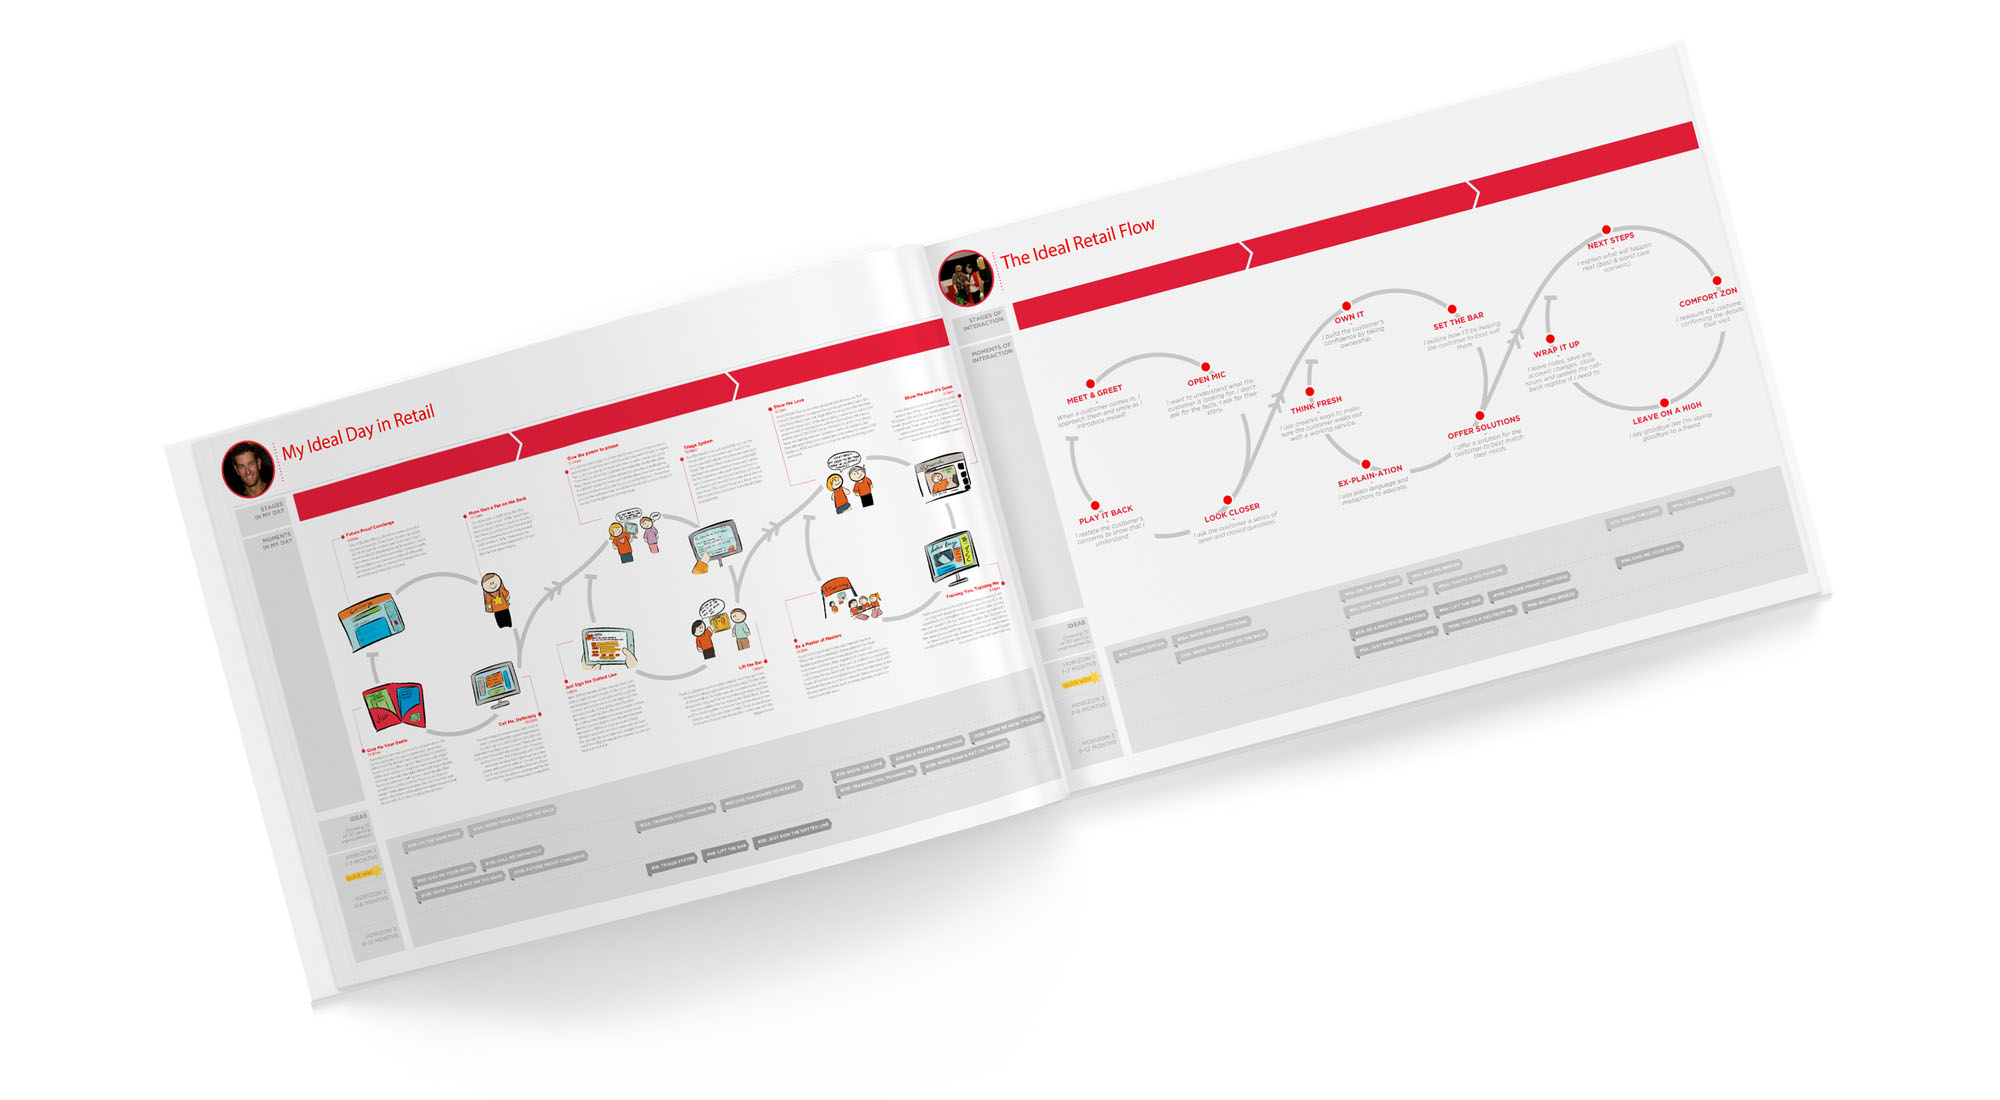 Virgin Mobile ideal day in retail customer journey map